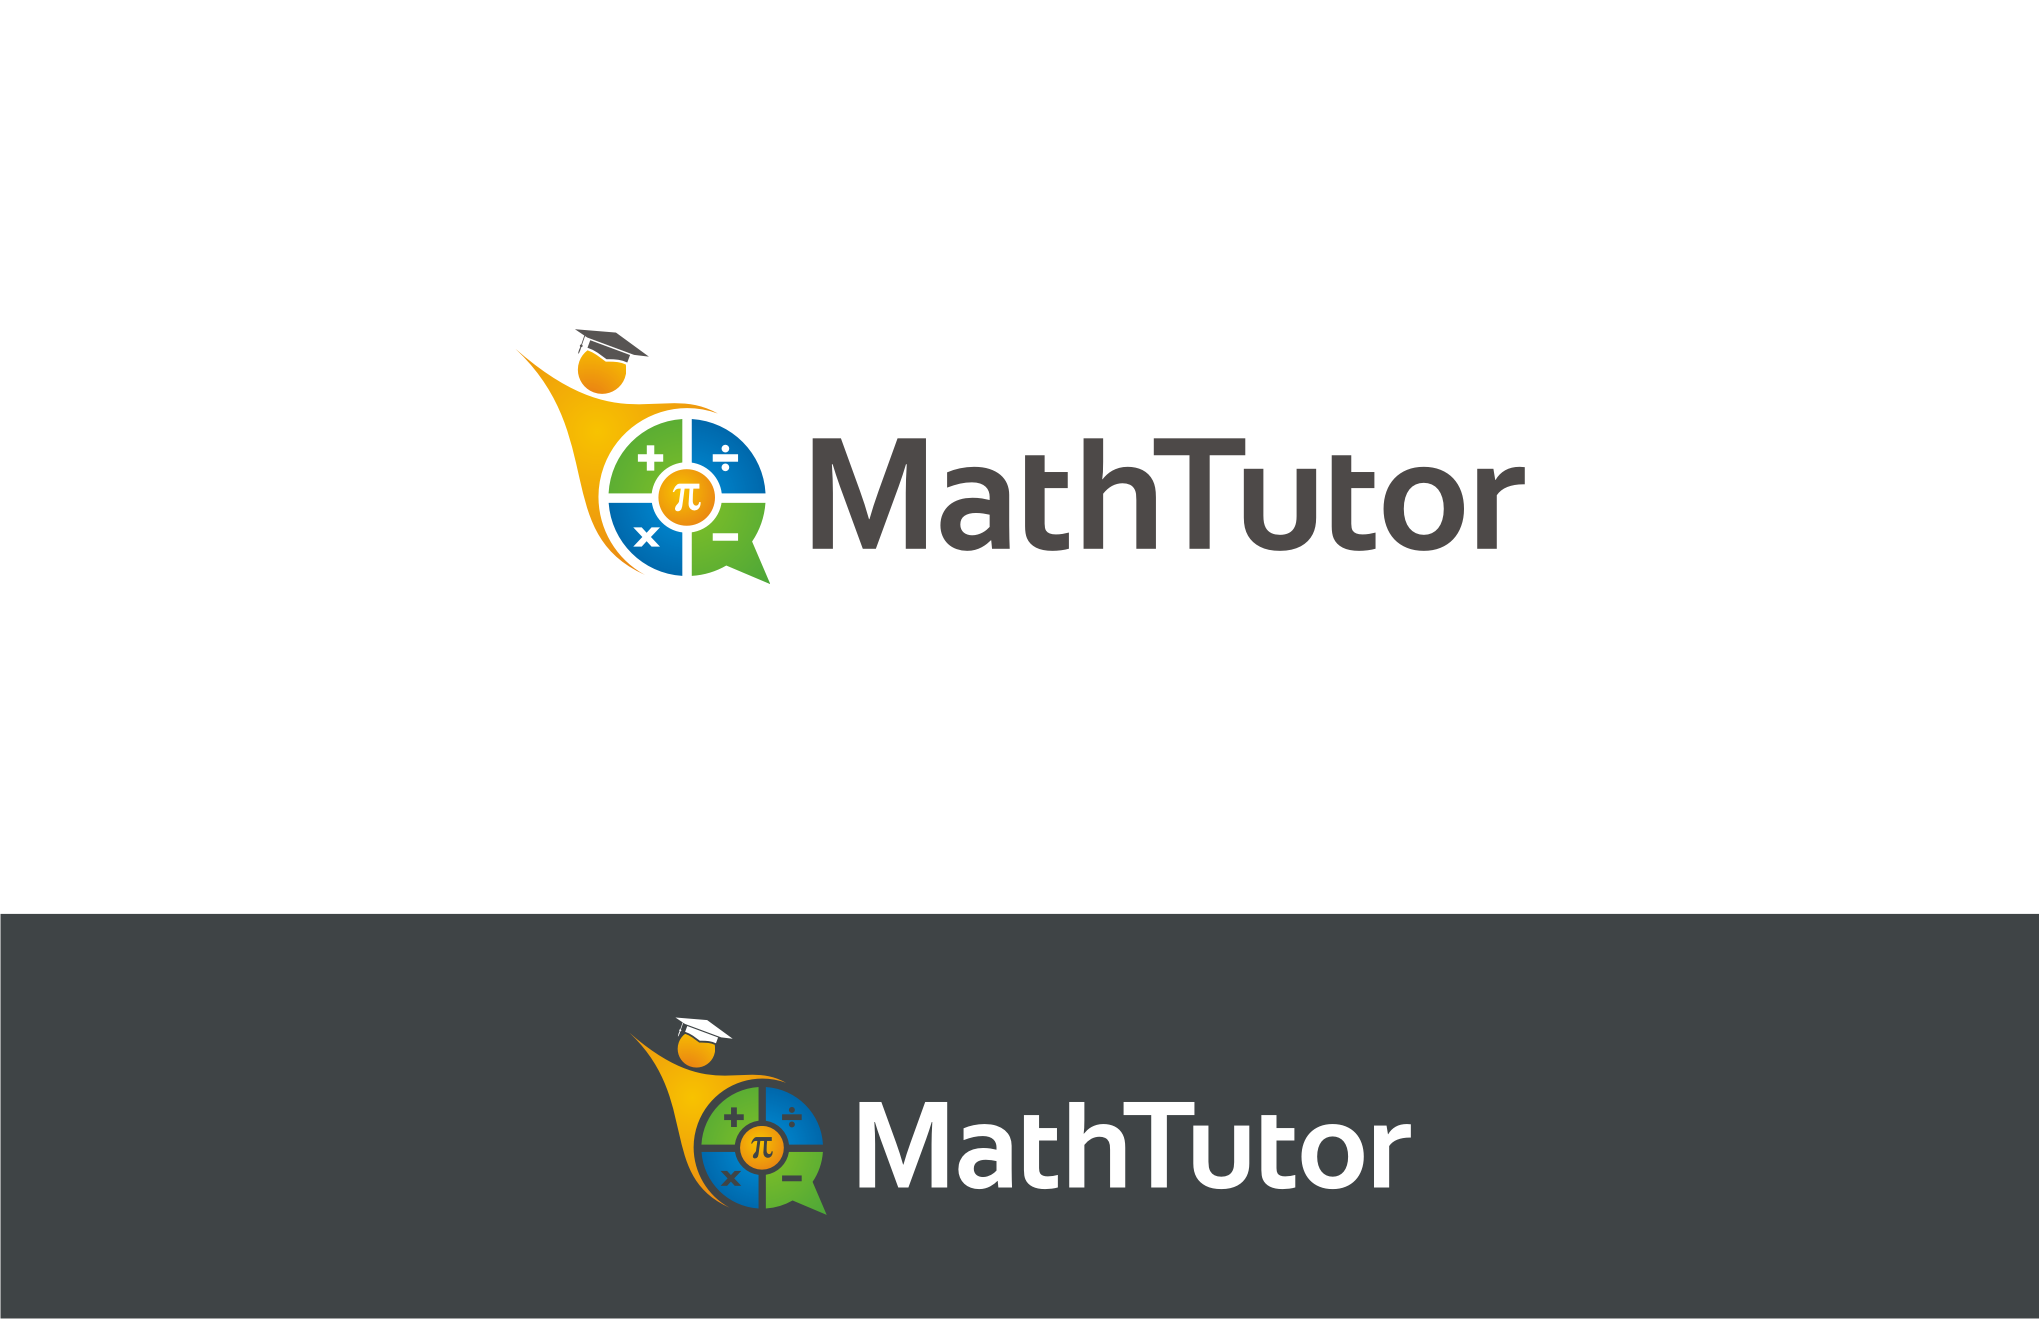 Home Tutor Solutions Limited needs a new logo